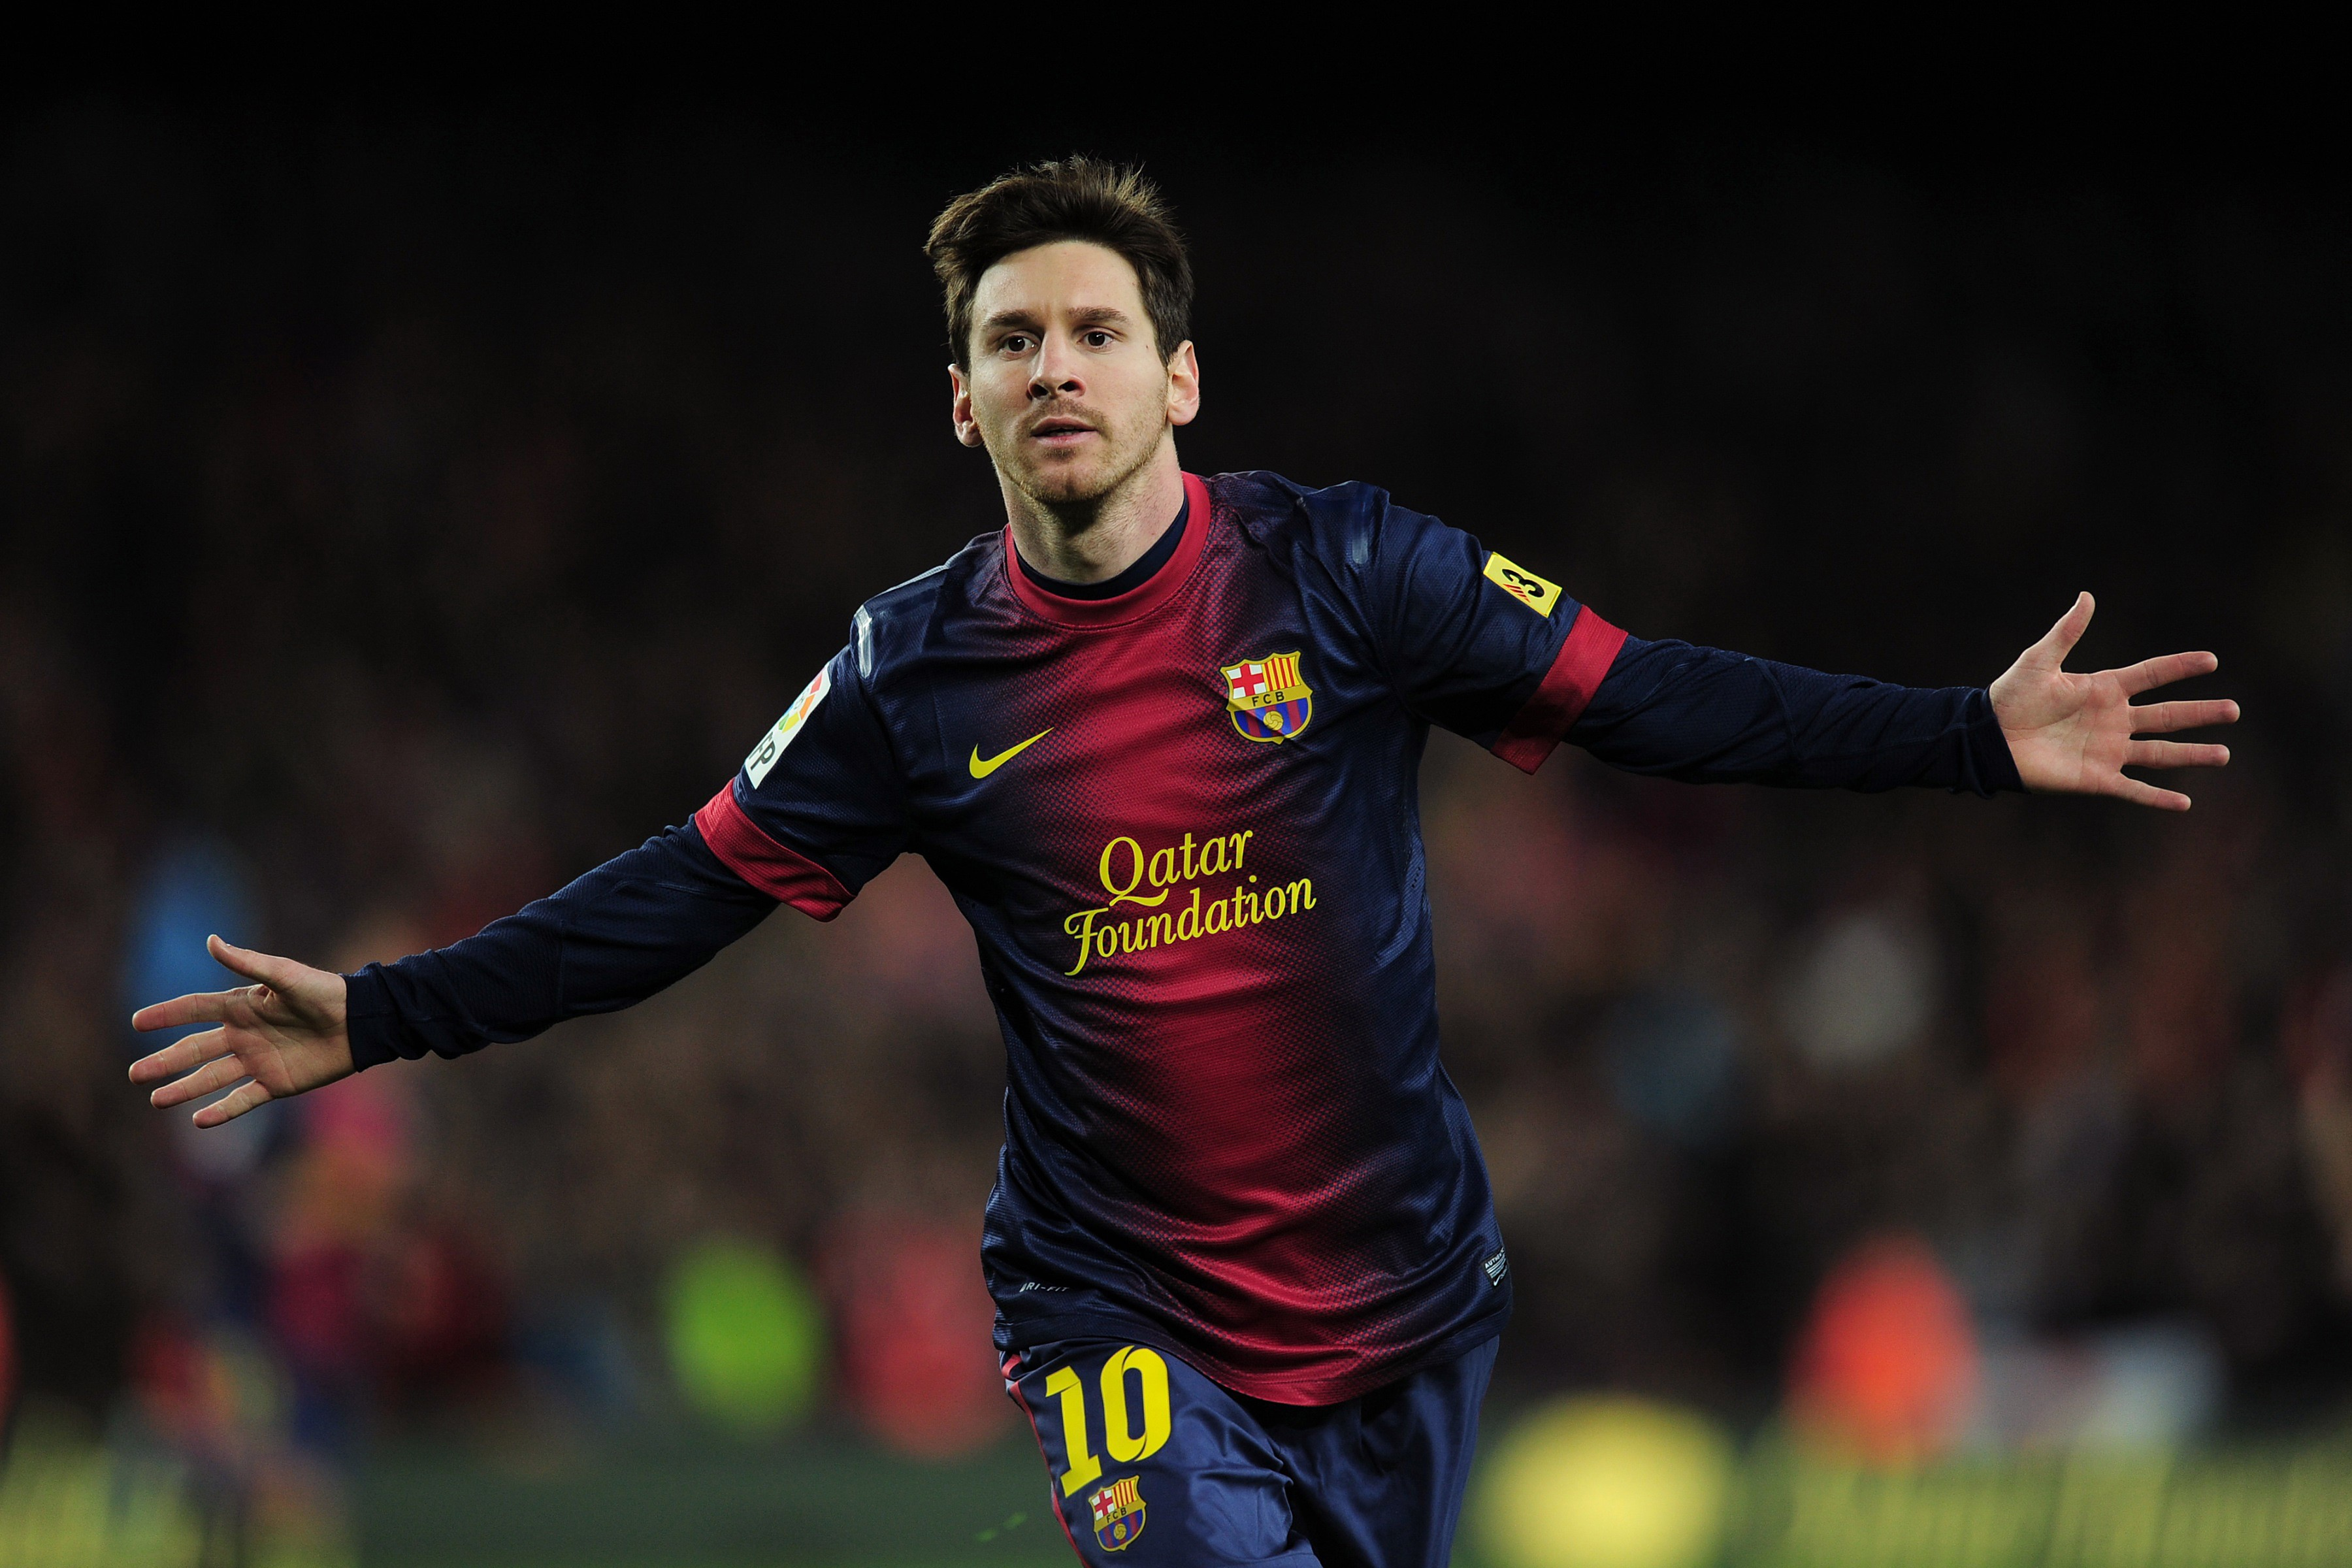 Lionel Messi Cheers a Goal 392.86 Kb